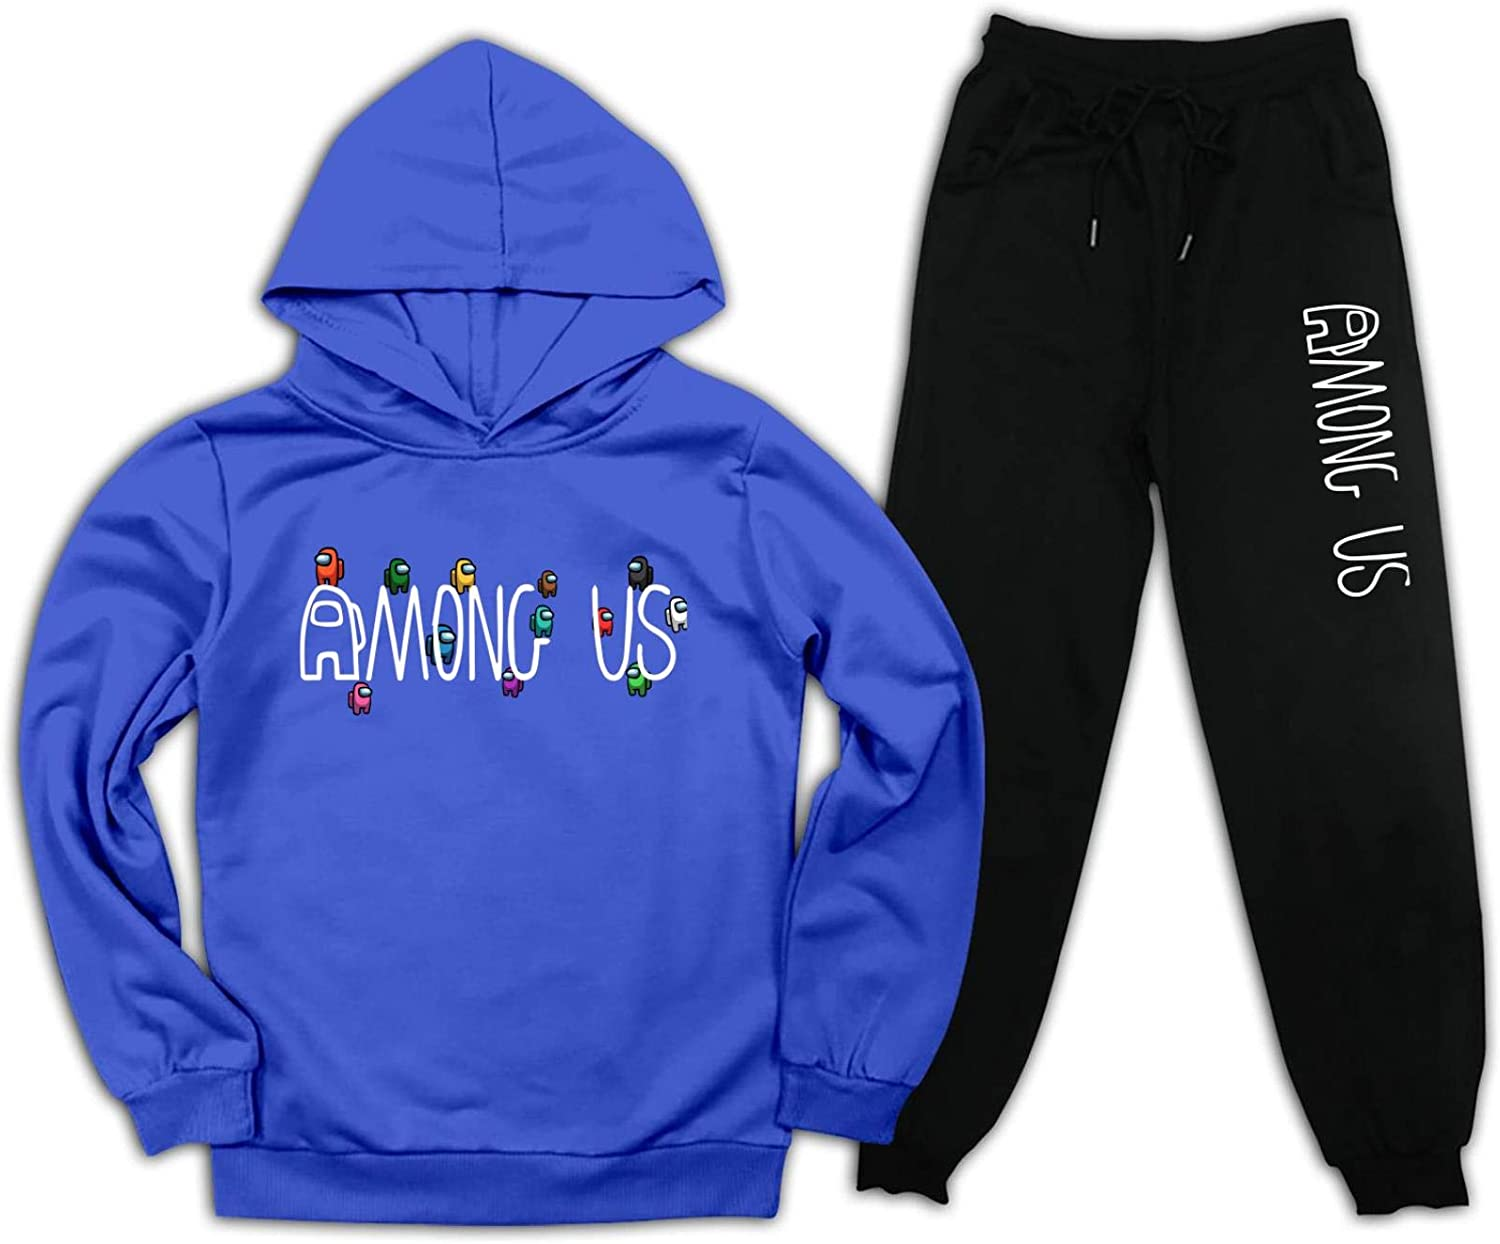 2 Piece Set Youth Among us Pullover Hoodie and Sweatpants Suit for Boys Girls